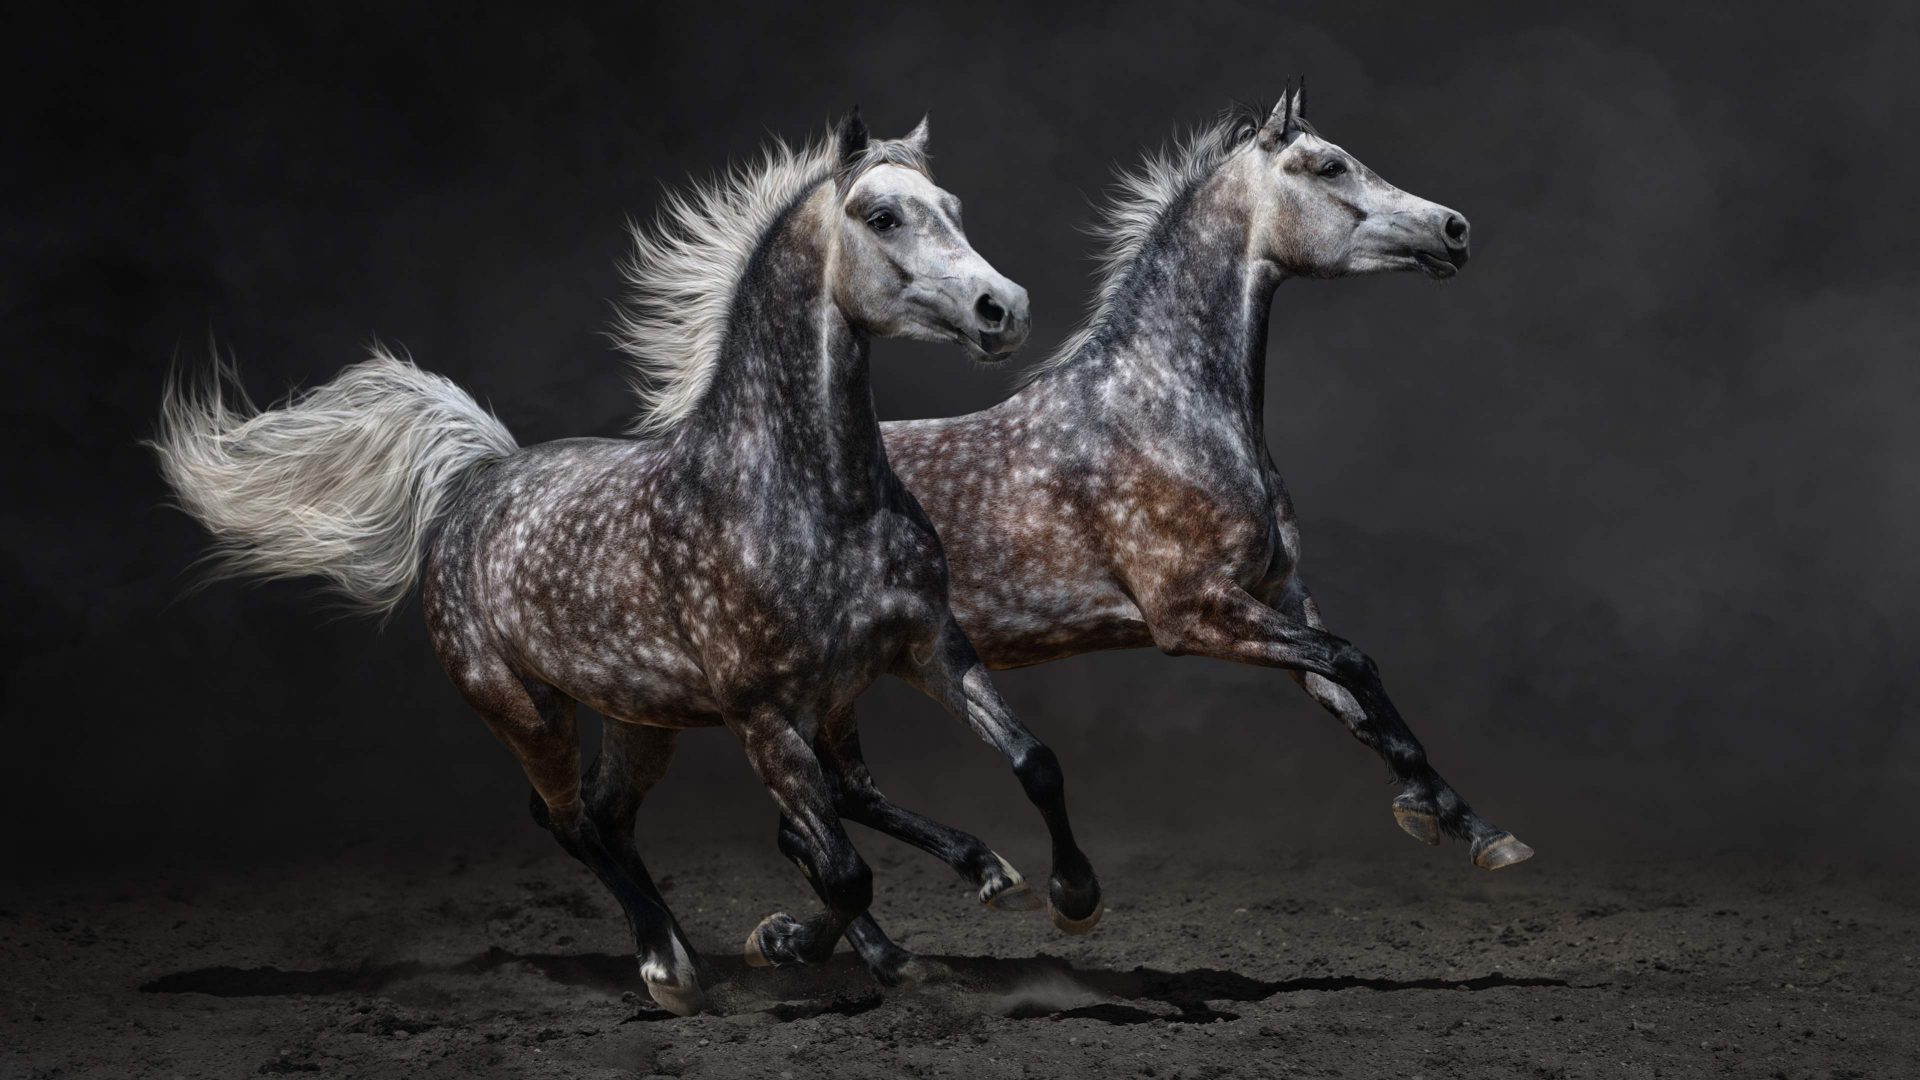 gray-horse-galloping-uhd-1920x1080-1920%C3%971080-wallpaper-wp3806053